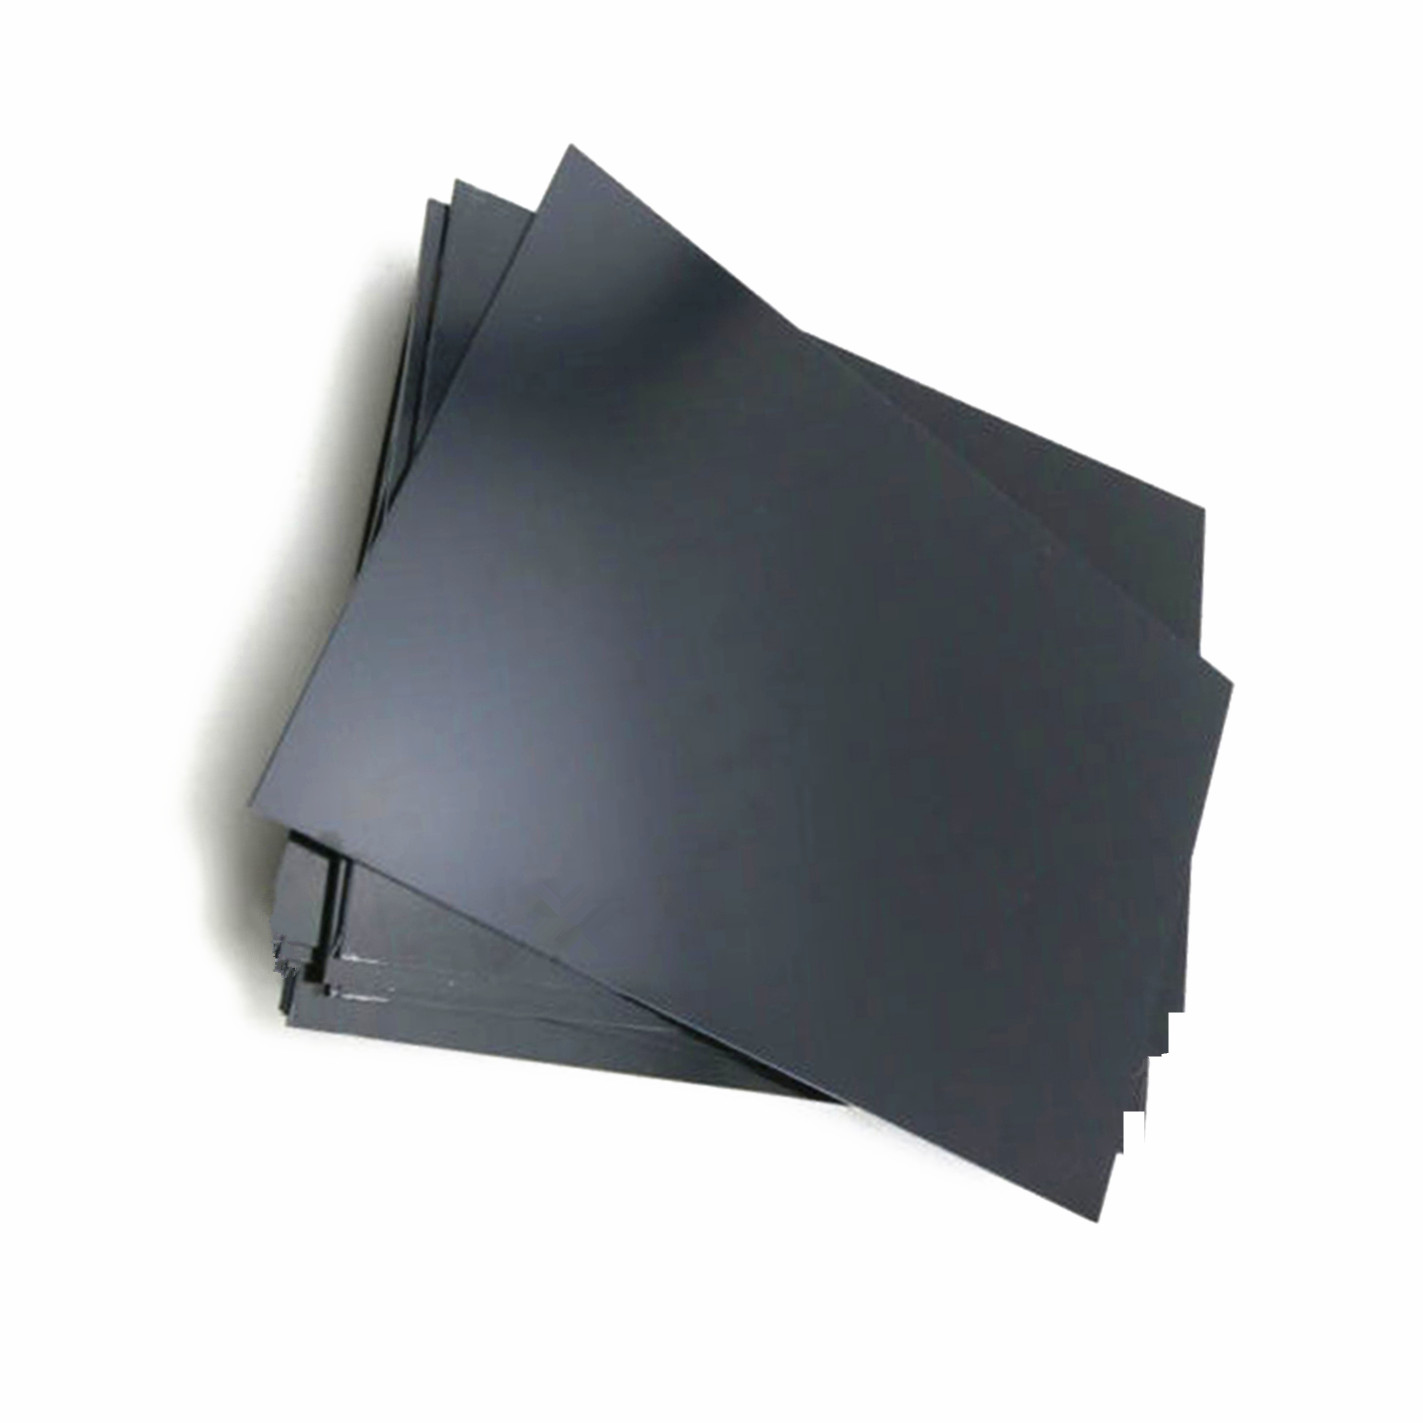 1Pc Durable Black ABS Styrene Plastic Flat Sheet Electrical Insulation Plastic Plate 0.5mm Thickness For Food Industry Parts